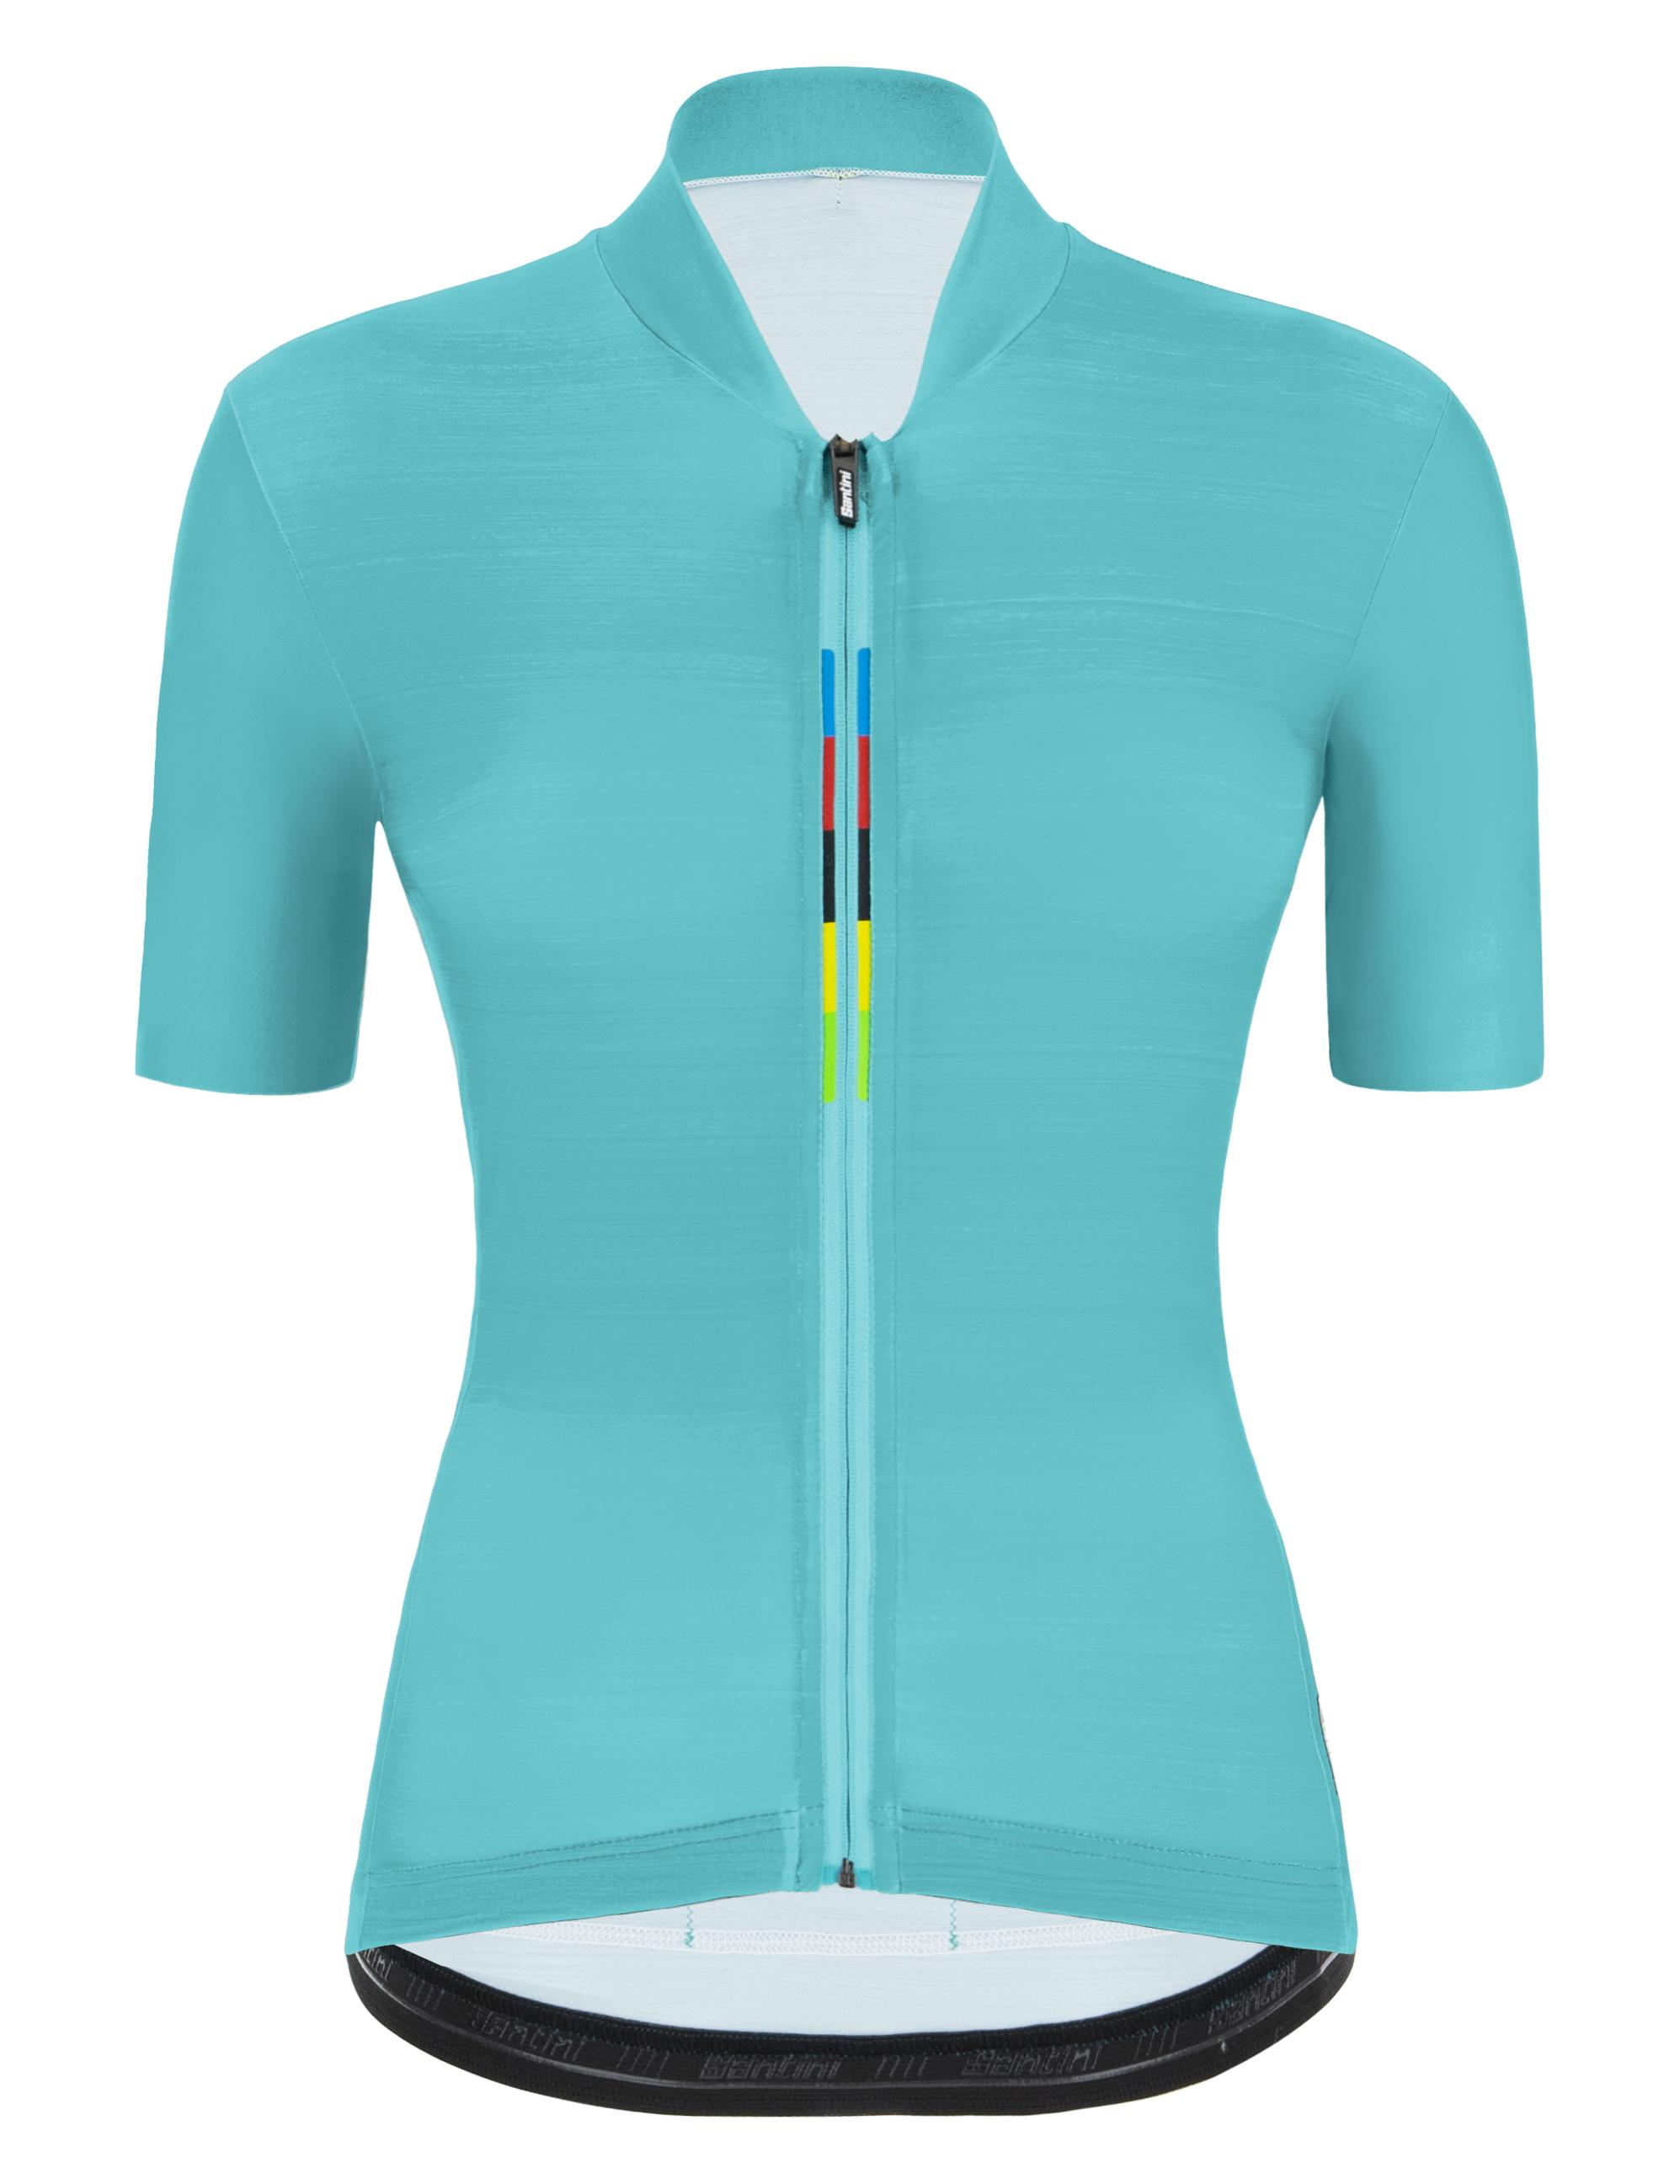 Santini Fietsshirt Korte mouwen Blauw Heren - Official Uci Rainbow S/S Jersey For Women Acqua Blue